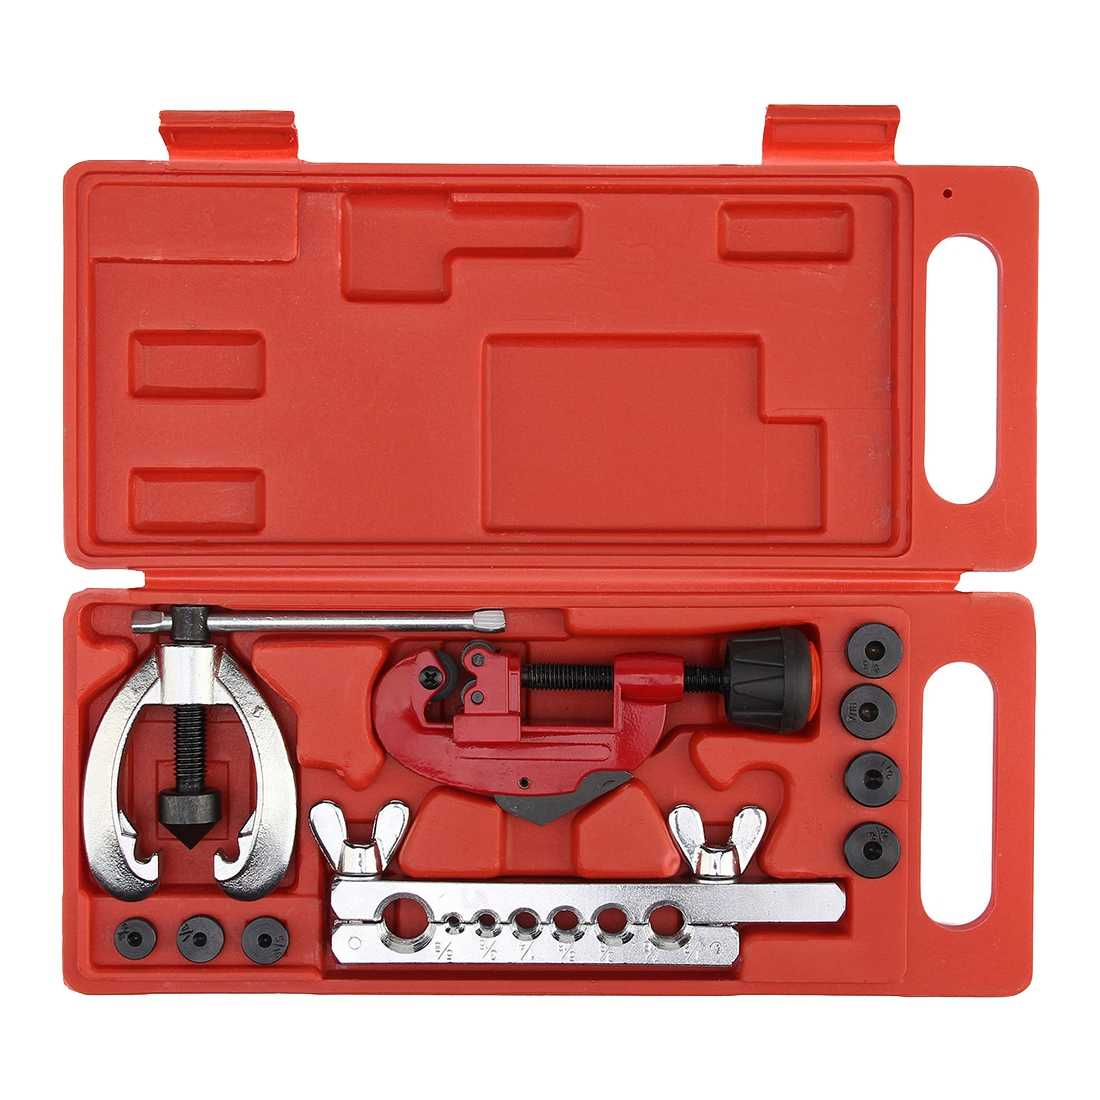 (Drop shipping) Copper Brake Fuel Pipe Repair Double Flaring Dies Tool Set Clamp Kit Tube Cutter